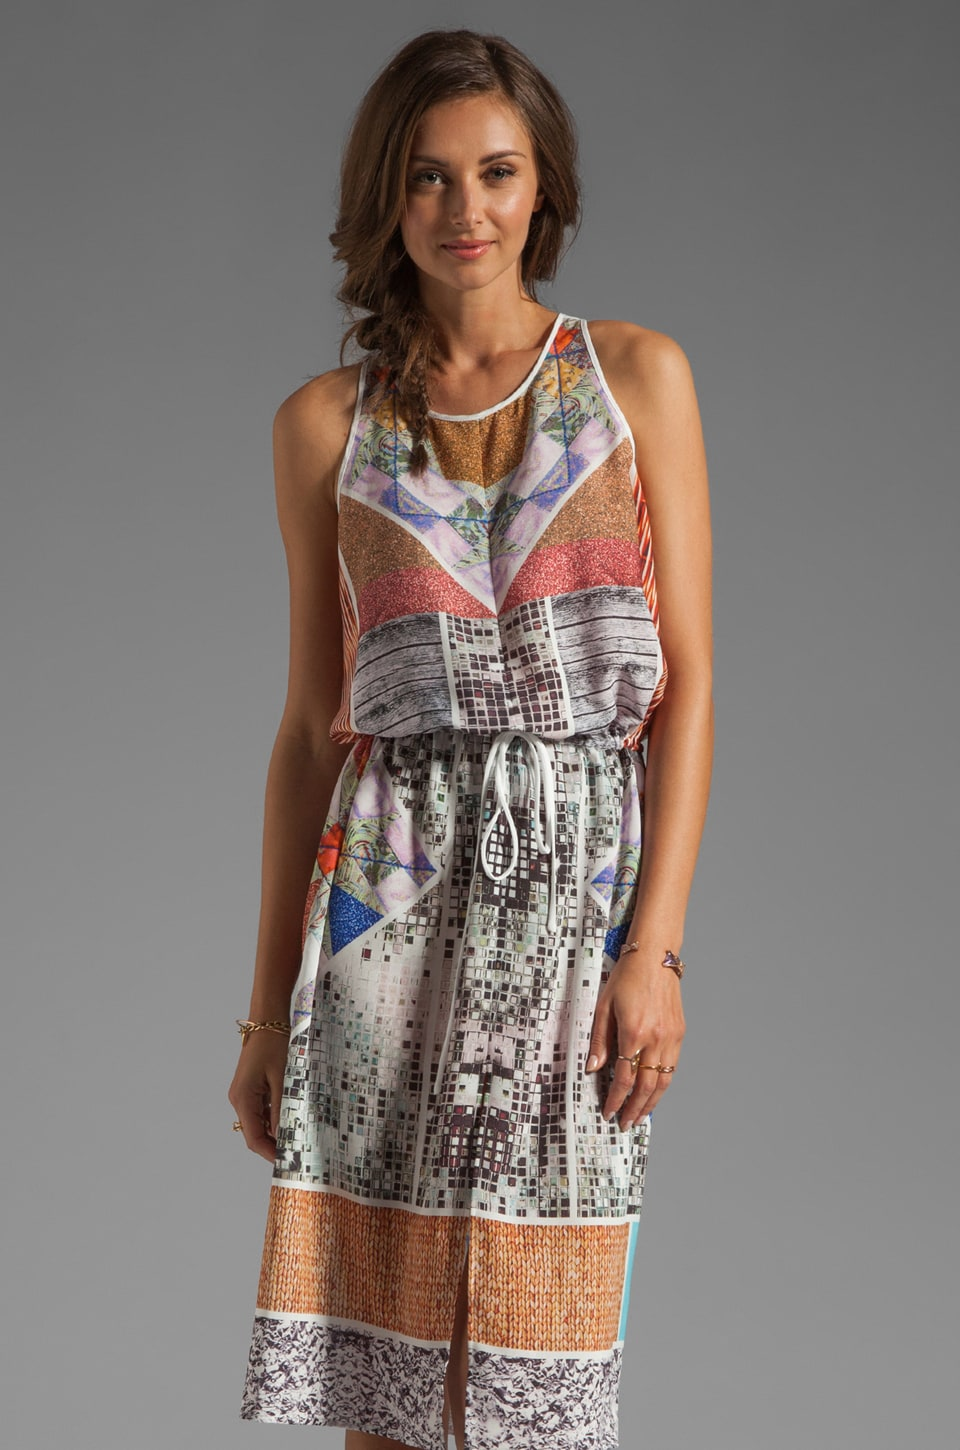 Clover Canyon Roadside Quilt Dress in Multi